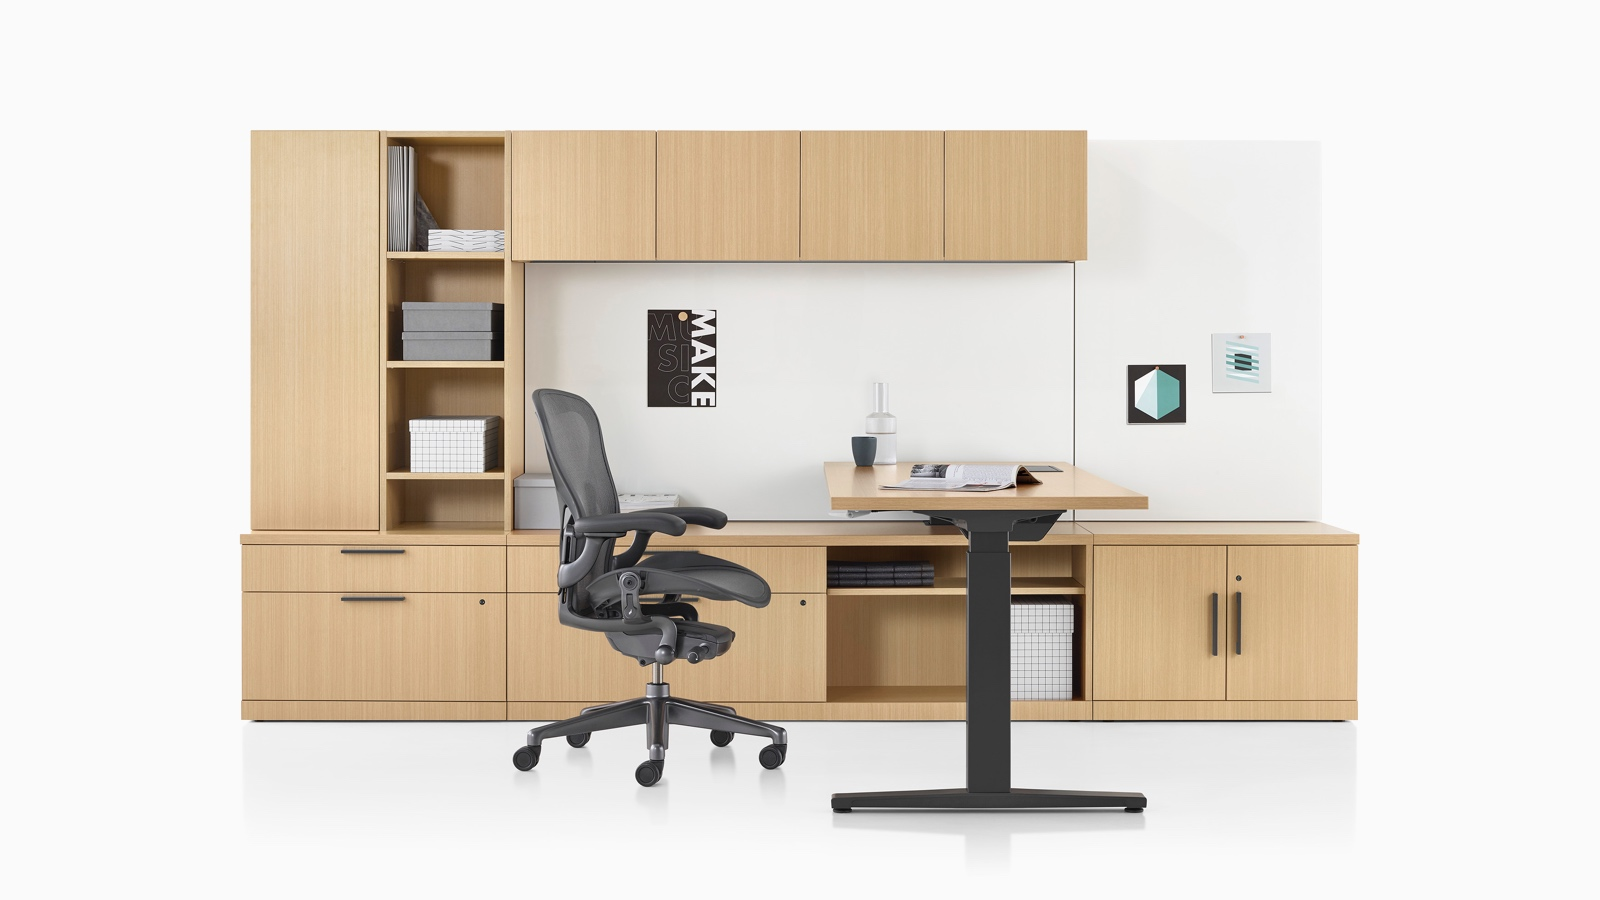 A Canvas Private Office with light wood storage, height-adjustable desk, and black Aeron office chair.